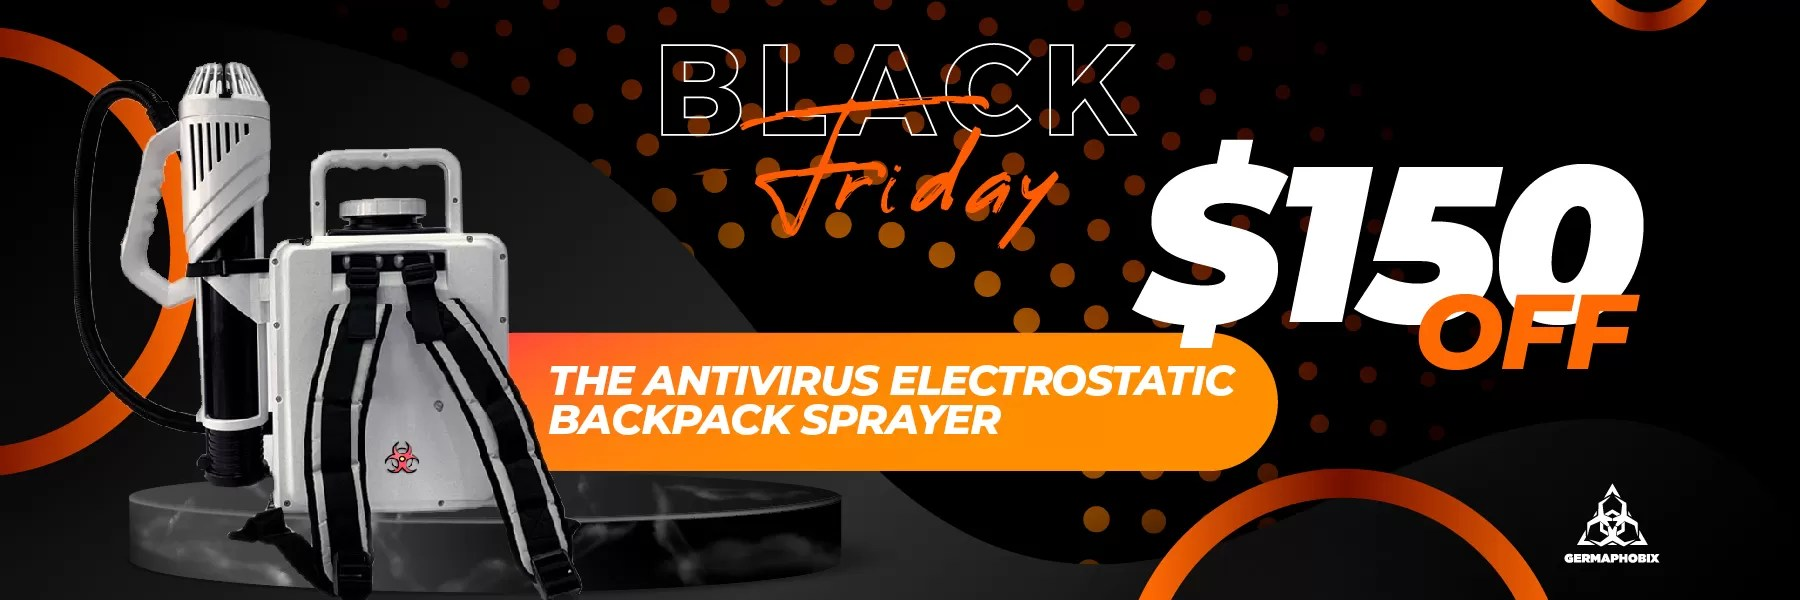 Black Friday electrostatic backpack sprayer